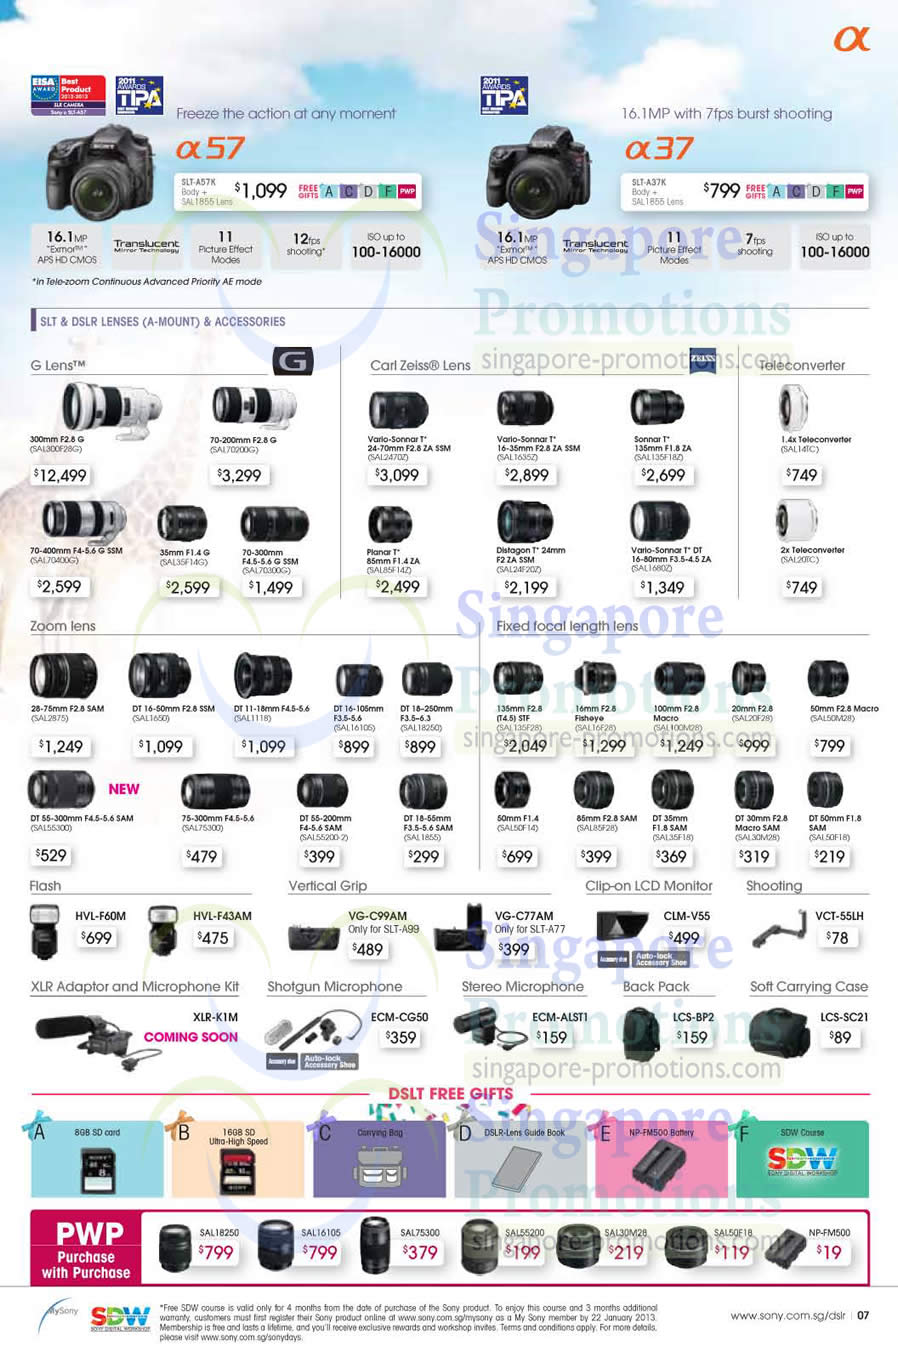 Camera Sony Dslr Camera Price List dslr digital camera slt a57k a37k sony days 2012 gst a37k